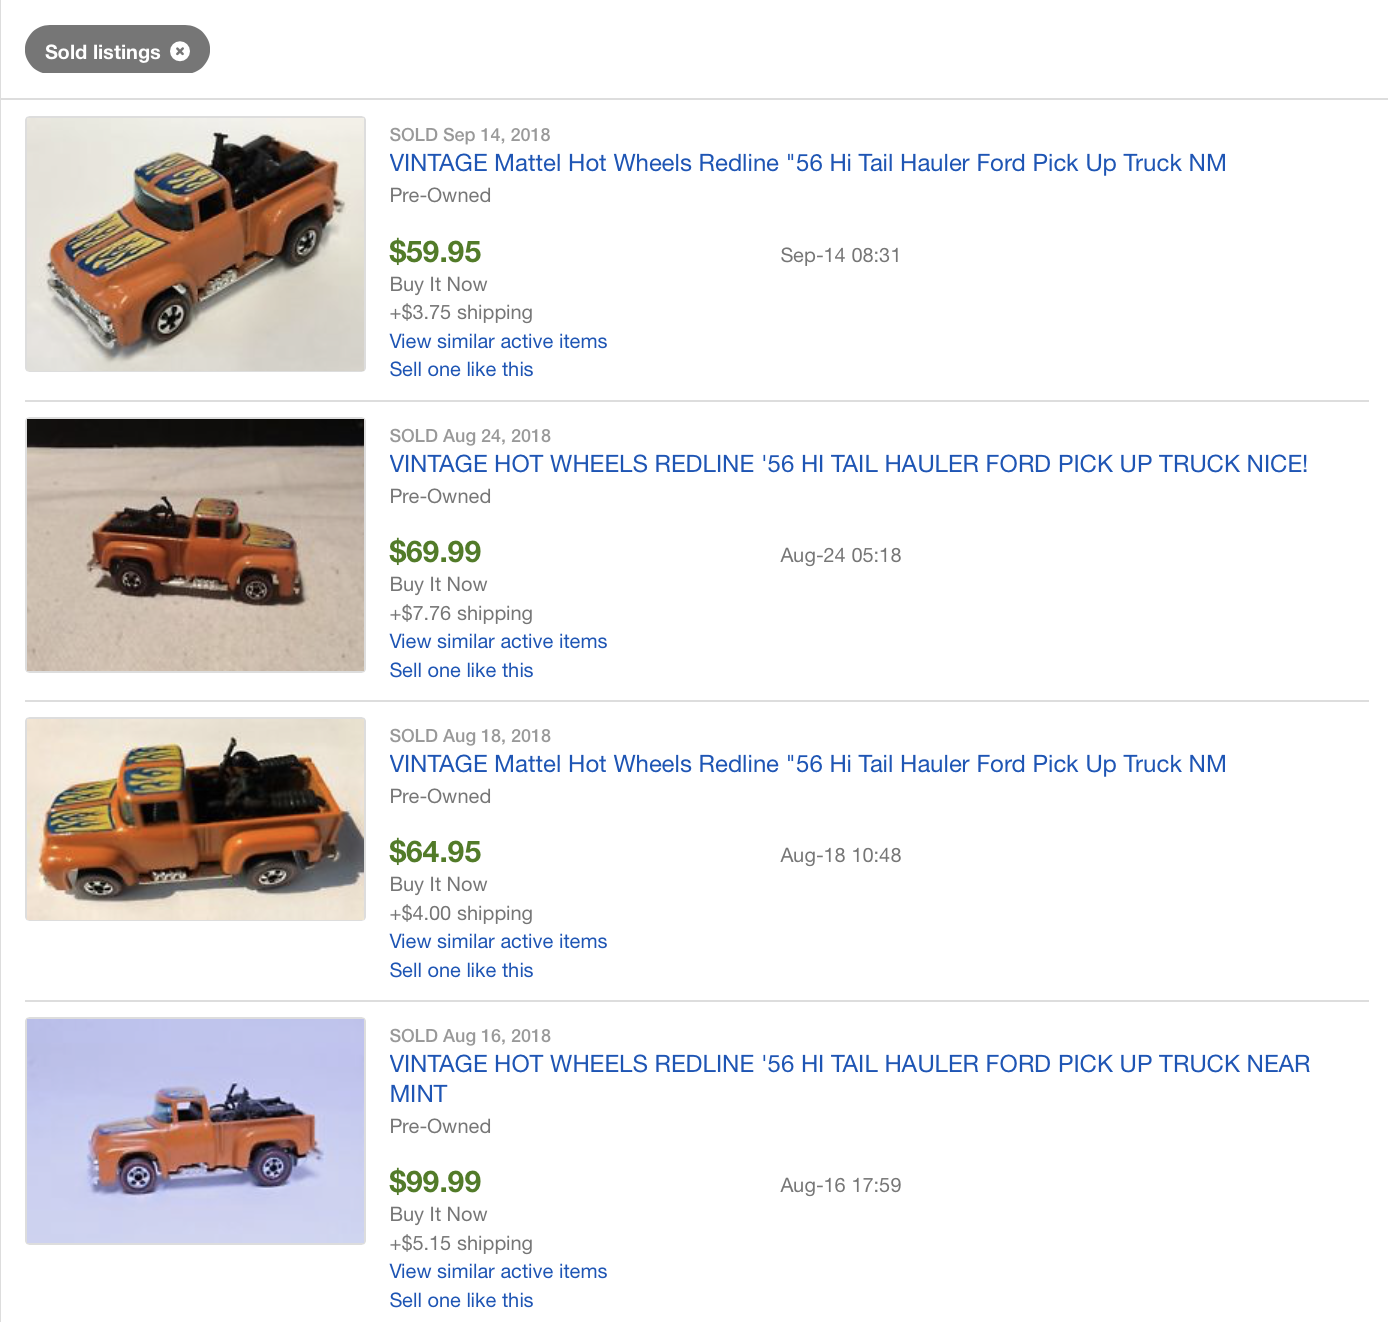 Garage Sale Flipping: How I turned $75 in Pins and Hot Wheels into